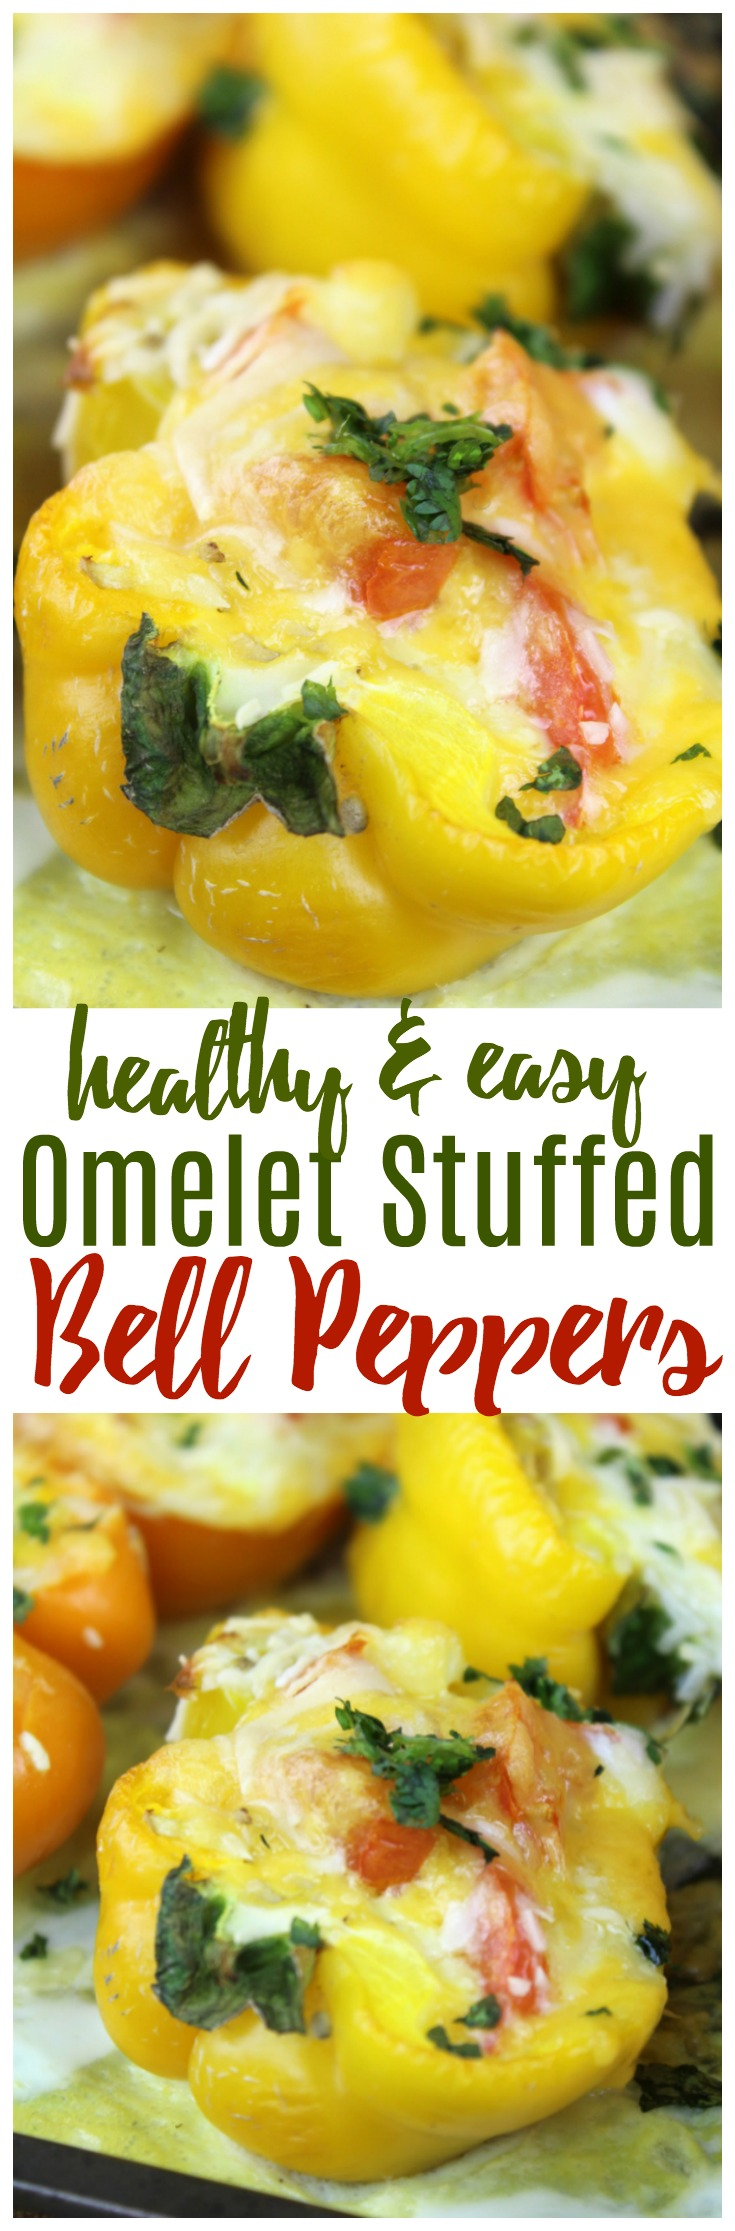 Peppers are the perfect vegetable for an inside-out omelet!  These stuffed pepper omelets are not only easy to make, they are incredibly healthy, too!  #healthy #peppers #omelet #breakfast